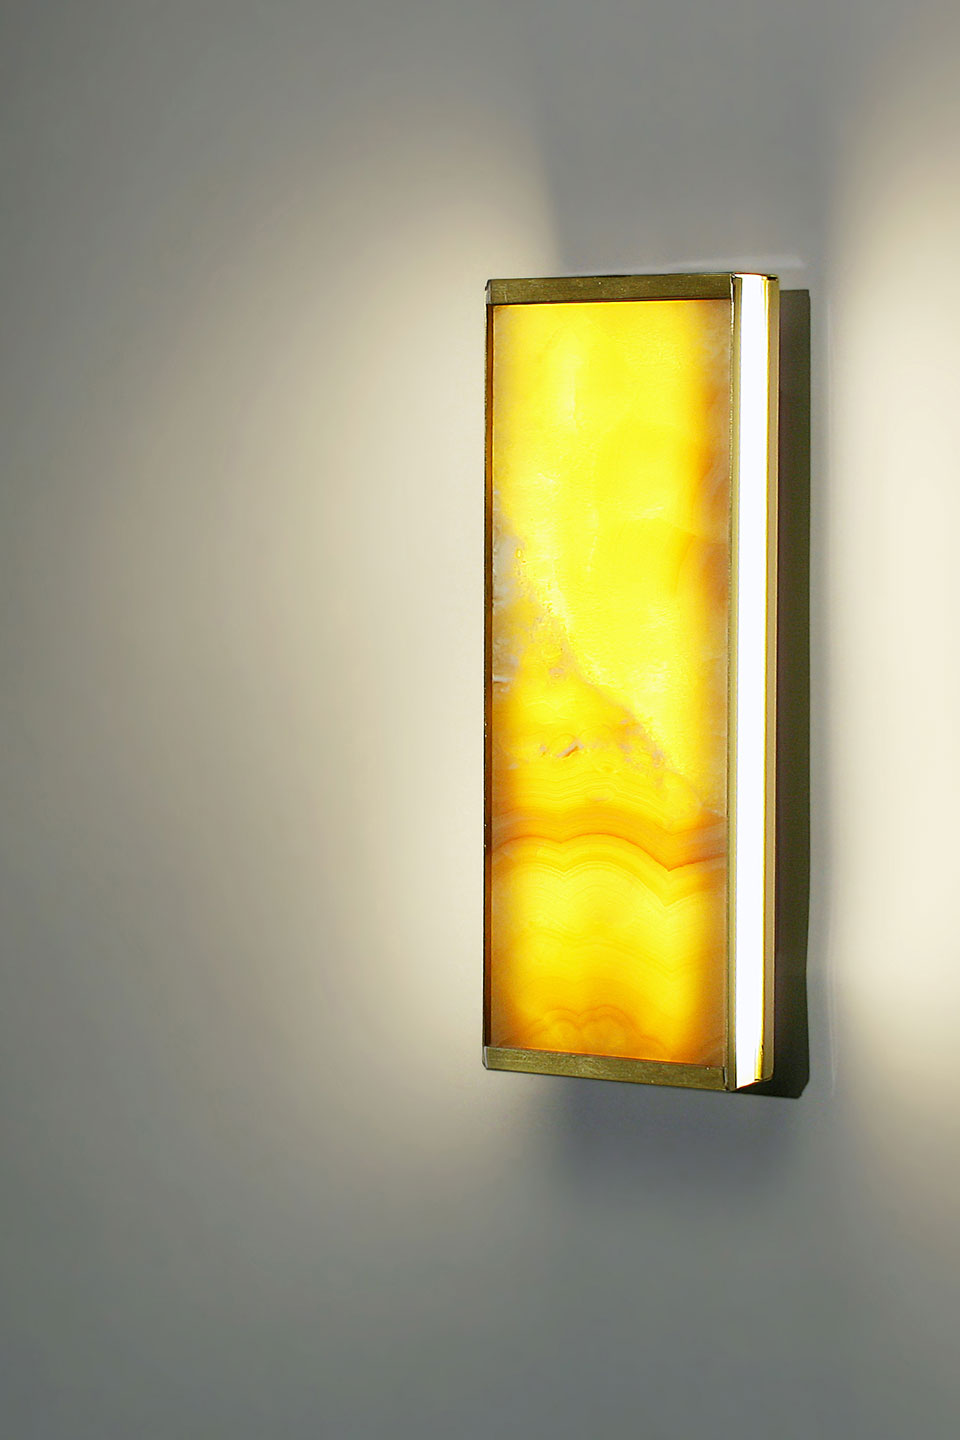 Wall Lamp With Led Lighting Gold Metal Available In Large Size